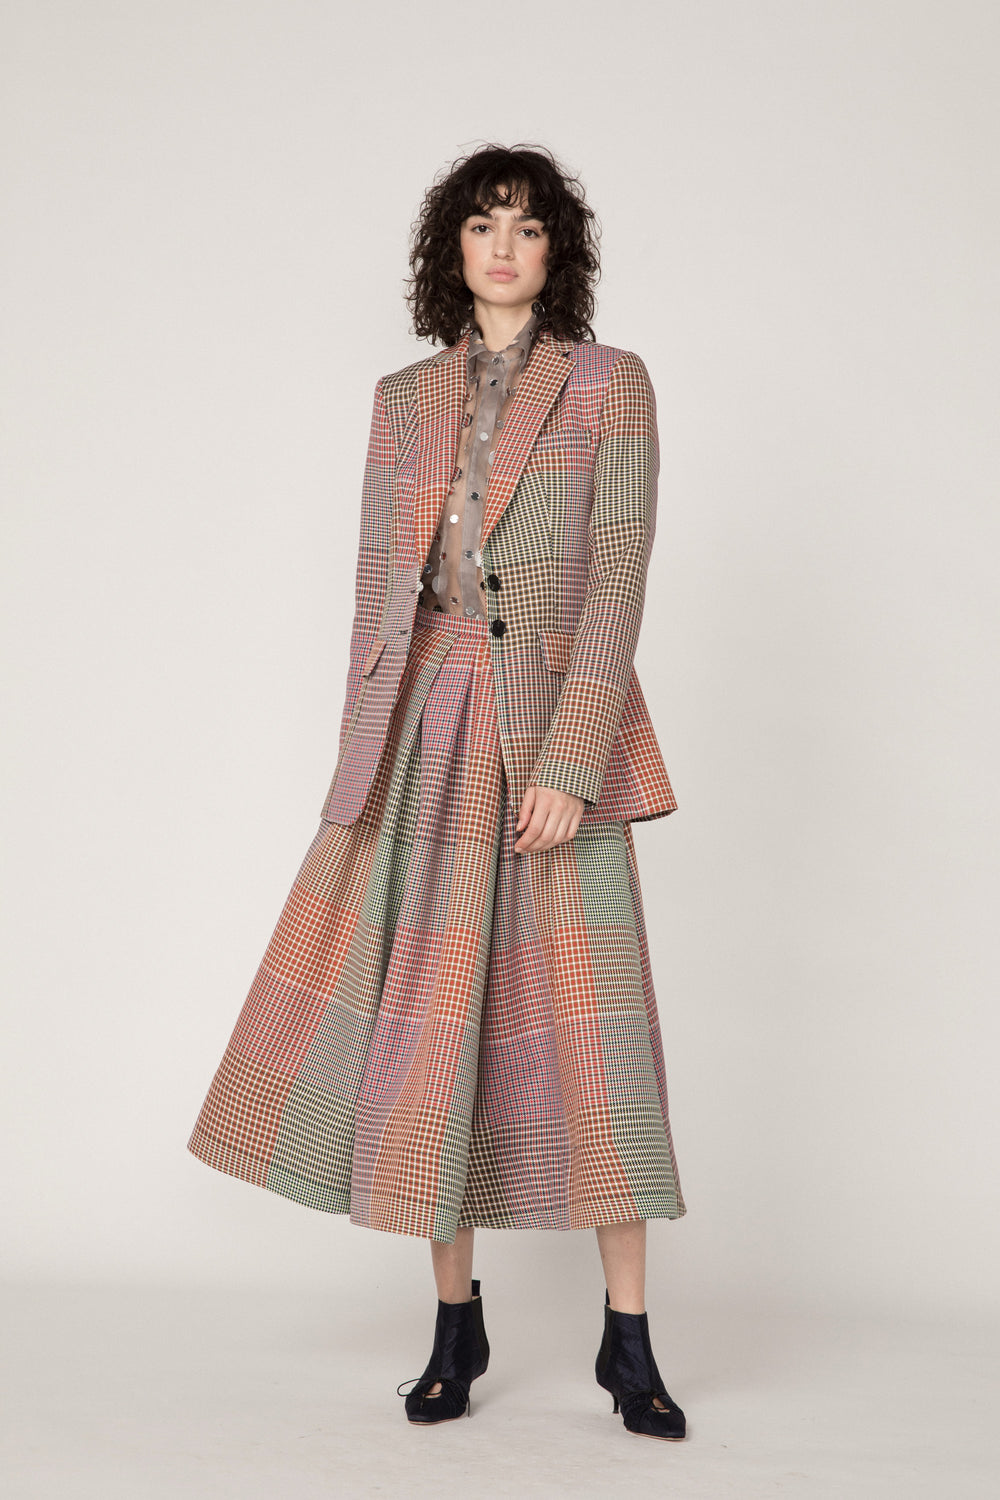 Rosie Assoulin Pre-Fall 2019 Classic Blazer. Classic tailored blazer. Notched lapel. Two front button closures. Accentuated waist. Two flap patch pockets. Multicolored plaid. 100% Polyester. Sizes 0 - 12.